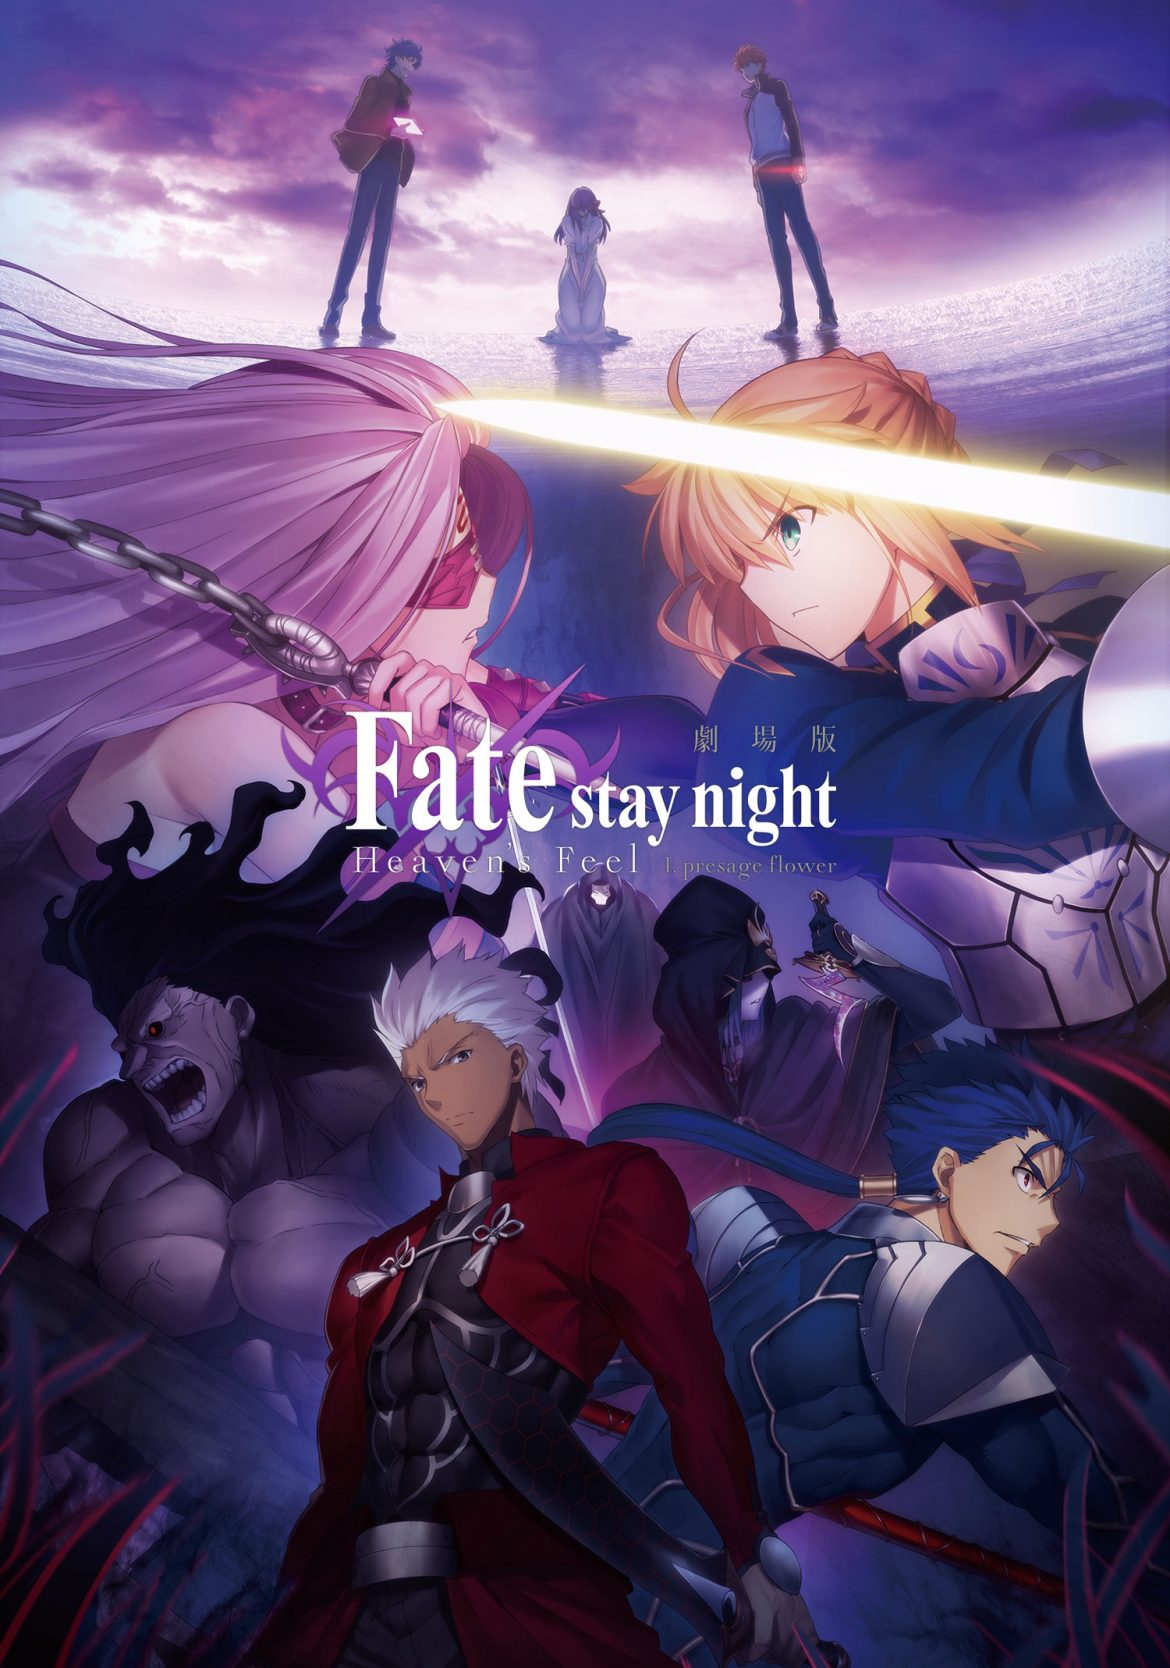 Fate_Stay_Night_Heaven_Feel_Part1_Visual_Art